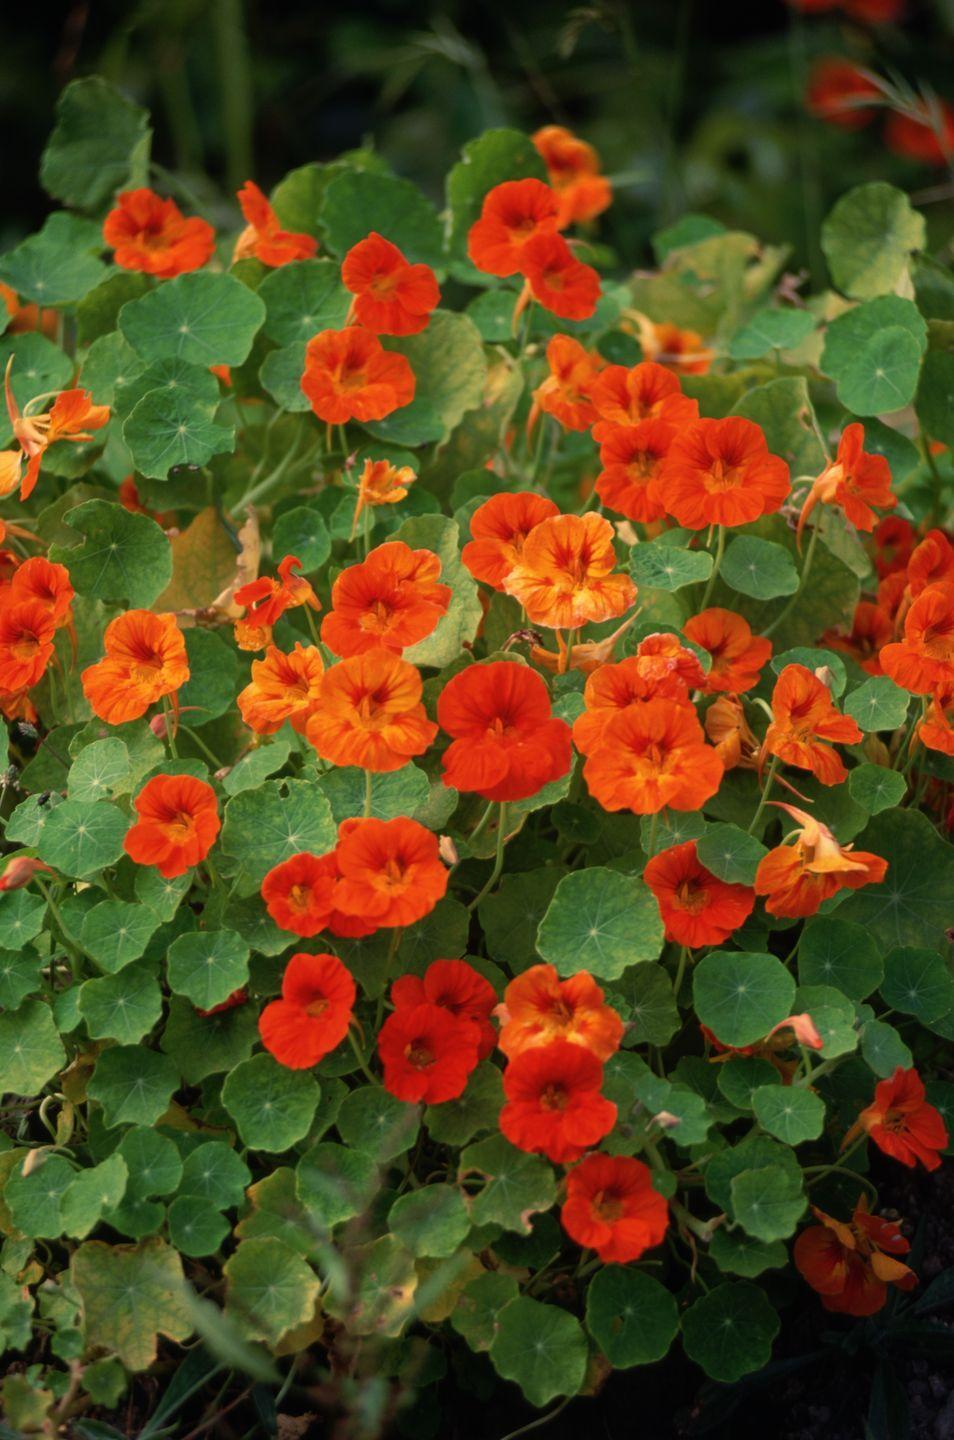 """<p>These cheery annuals are easy to grow from seed. (Soak them first overnight to help them sprout faster.) Their beautiful round leaves and cheery flowers work well in containers and beds, but they also can be trained up a trellis. Bonus: The leaves and flowers are edible! They like full sun. </p><p><a class=""""link rapid-noclick-resp"""" href=""""https://go.redirectingat.com?id=74968X1596630&url=https%3A%2F%2Fwww.burpee.com%2Fflowers%2Fnasturtium%2Fnasturtium-alaska-mix-46920A.html%3Fgclid%3DCjwKCAjwv_iEBhASEiwARoemvGqOJZPWDL4JGsMhzgJoNK9Fl2FYilNLQvU_lMys3ssI38FTT4ZvKBoCTvMQAvD_BwE&sref=https%3A%2F%2Fwww.countryliving.com%2Fgardening%2Fgarden-ideas%2Fadvice%2Fg1456%2Ffast-growing-vines%2F"""" rel=""""nofollow noopener"""" target=""""_blank"""" data-ylk=""""slk:SHOP NASTURTIUMS"""">SHOP NASTURTIUMS</a></p>"""